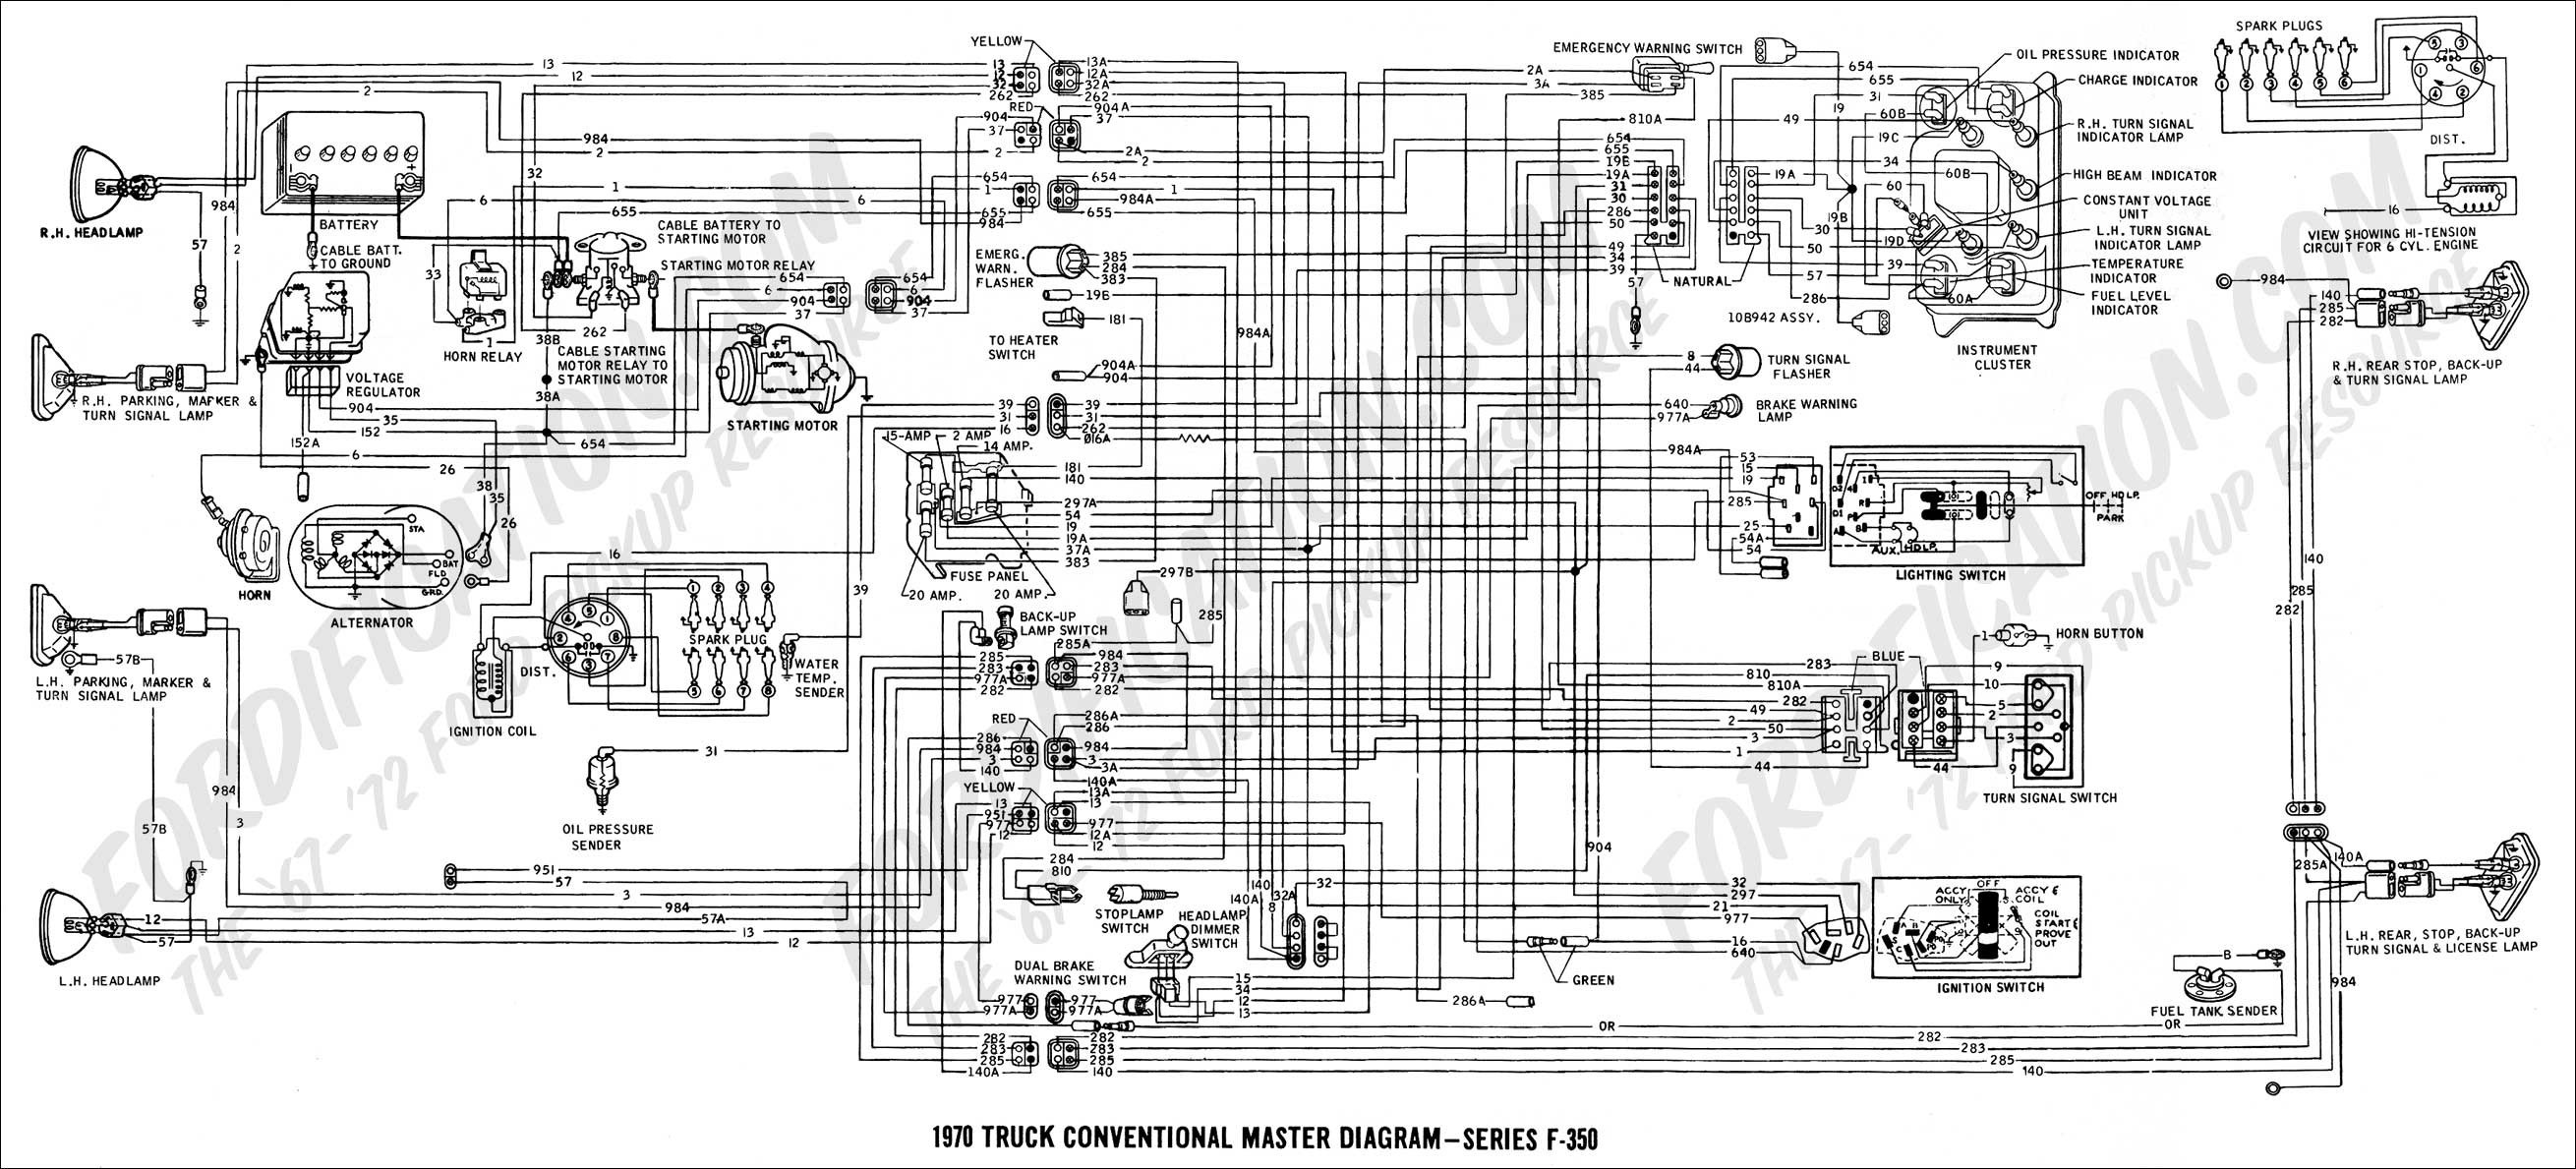 Ford F250 Tail Light Wiring 2003 ford F350 Super Duty Wiring Diagram Of Ford F250 Tail Light Wiring